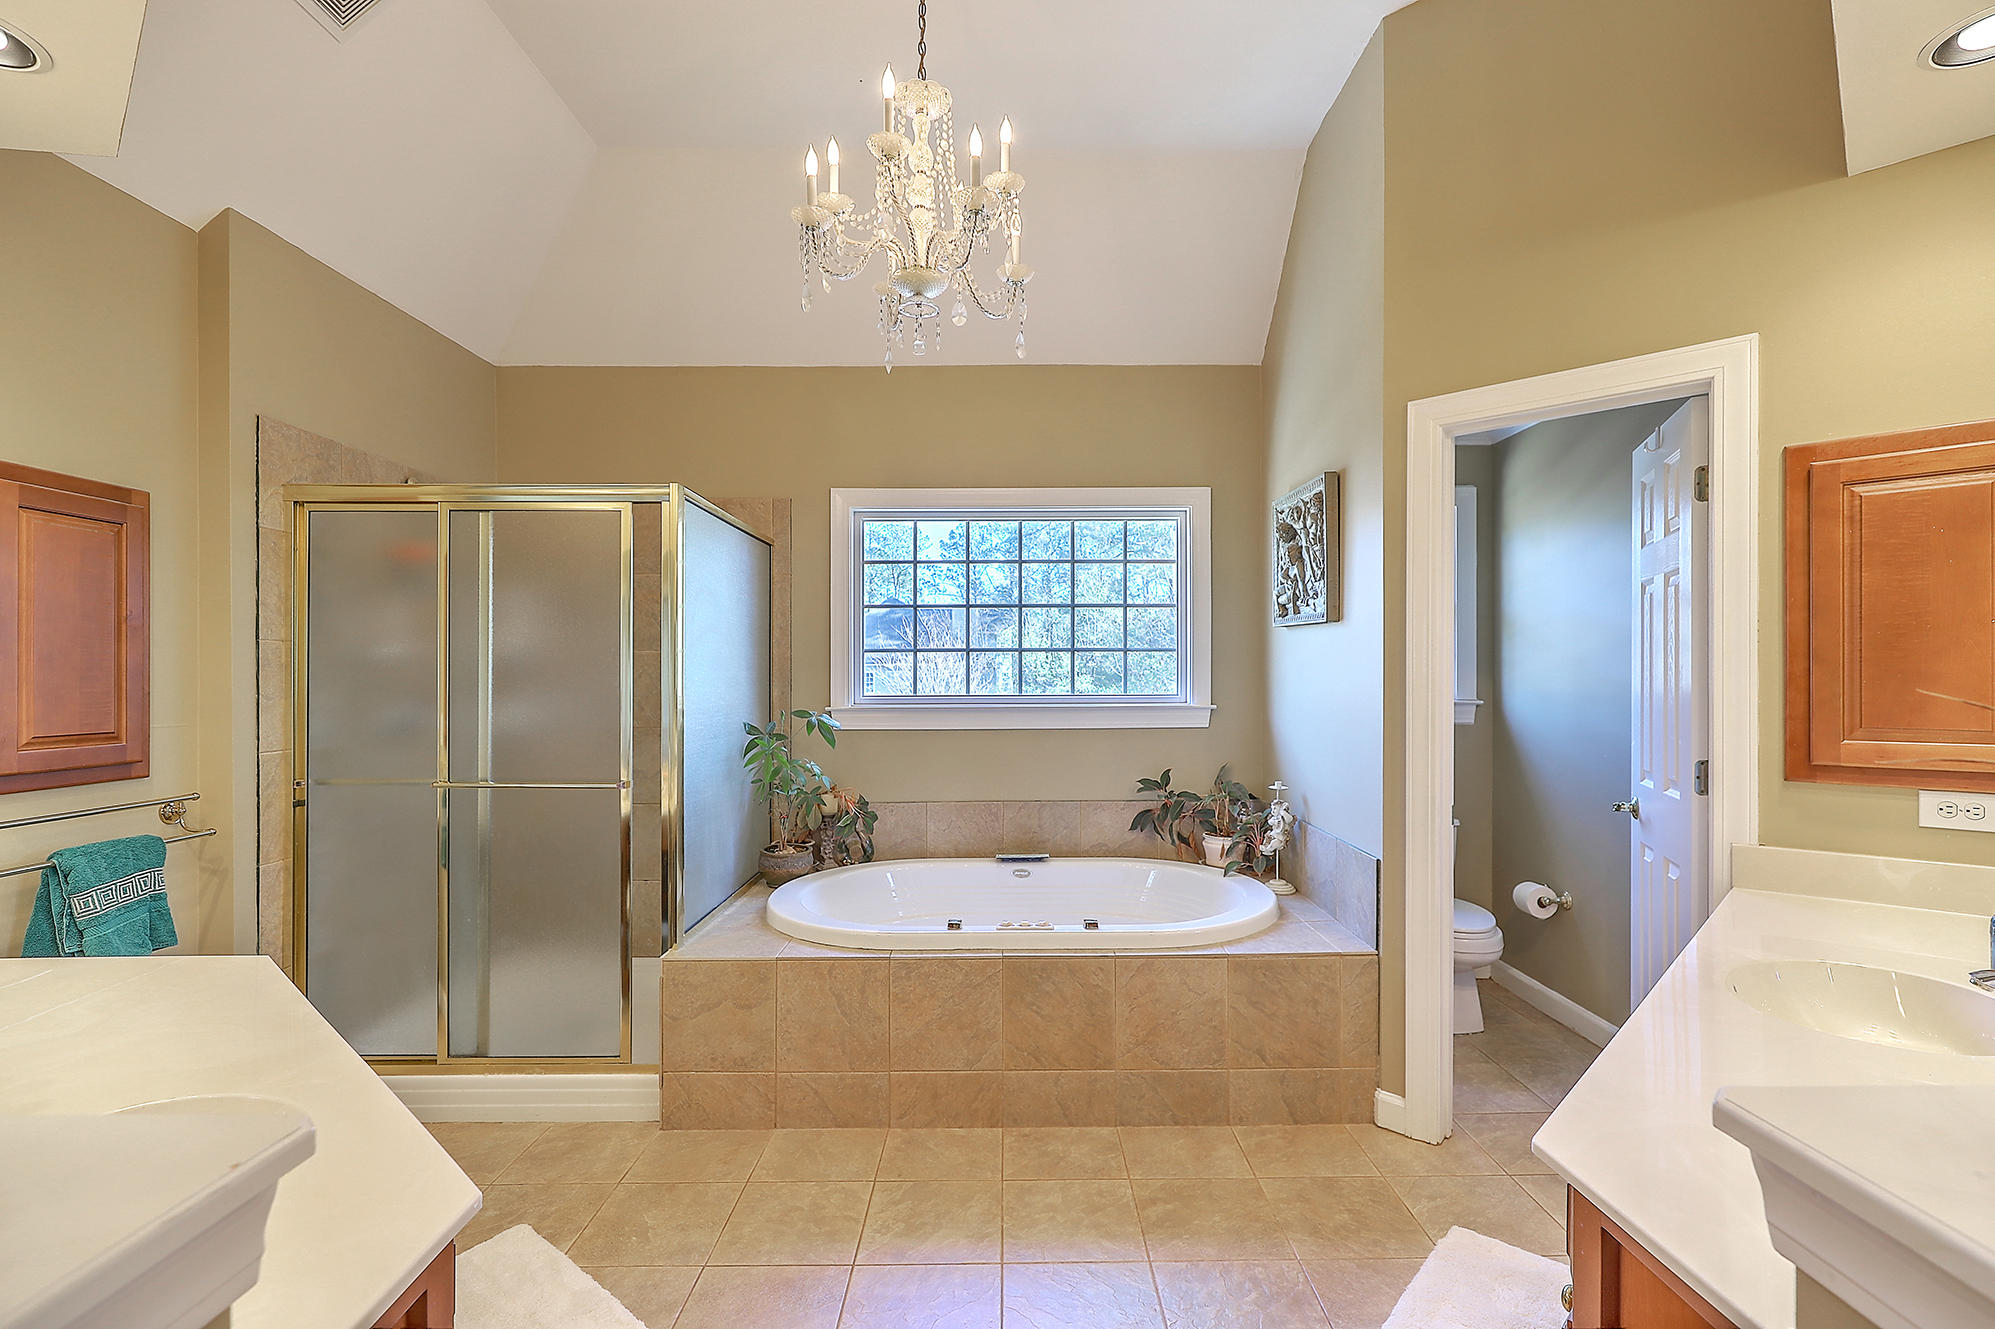 Dunes West Homes For Sale - 1784 Shell Ring Circle, Mount Pleasant, SC - 31